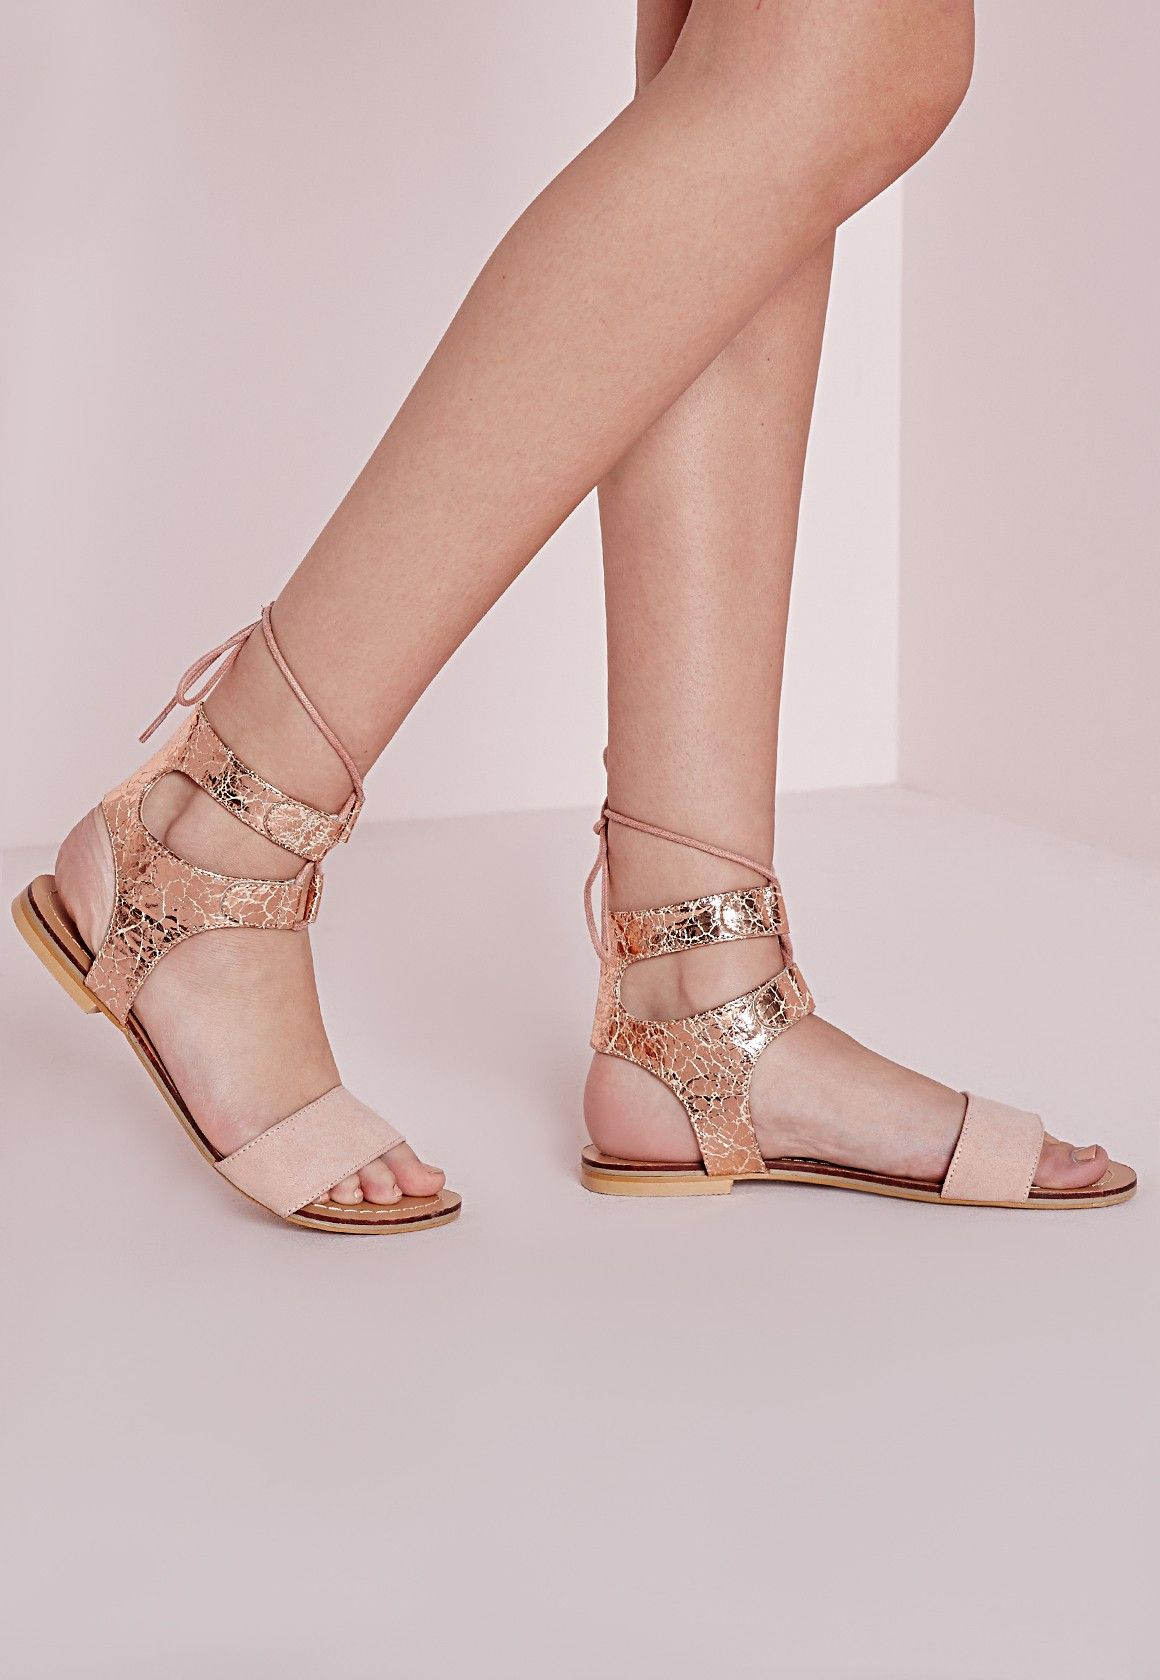 Missguided - Cracked Metallic Flat Sandals Rose Gold